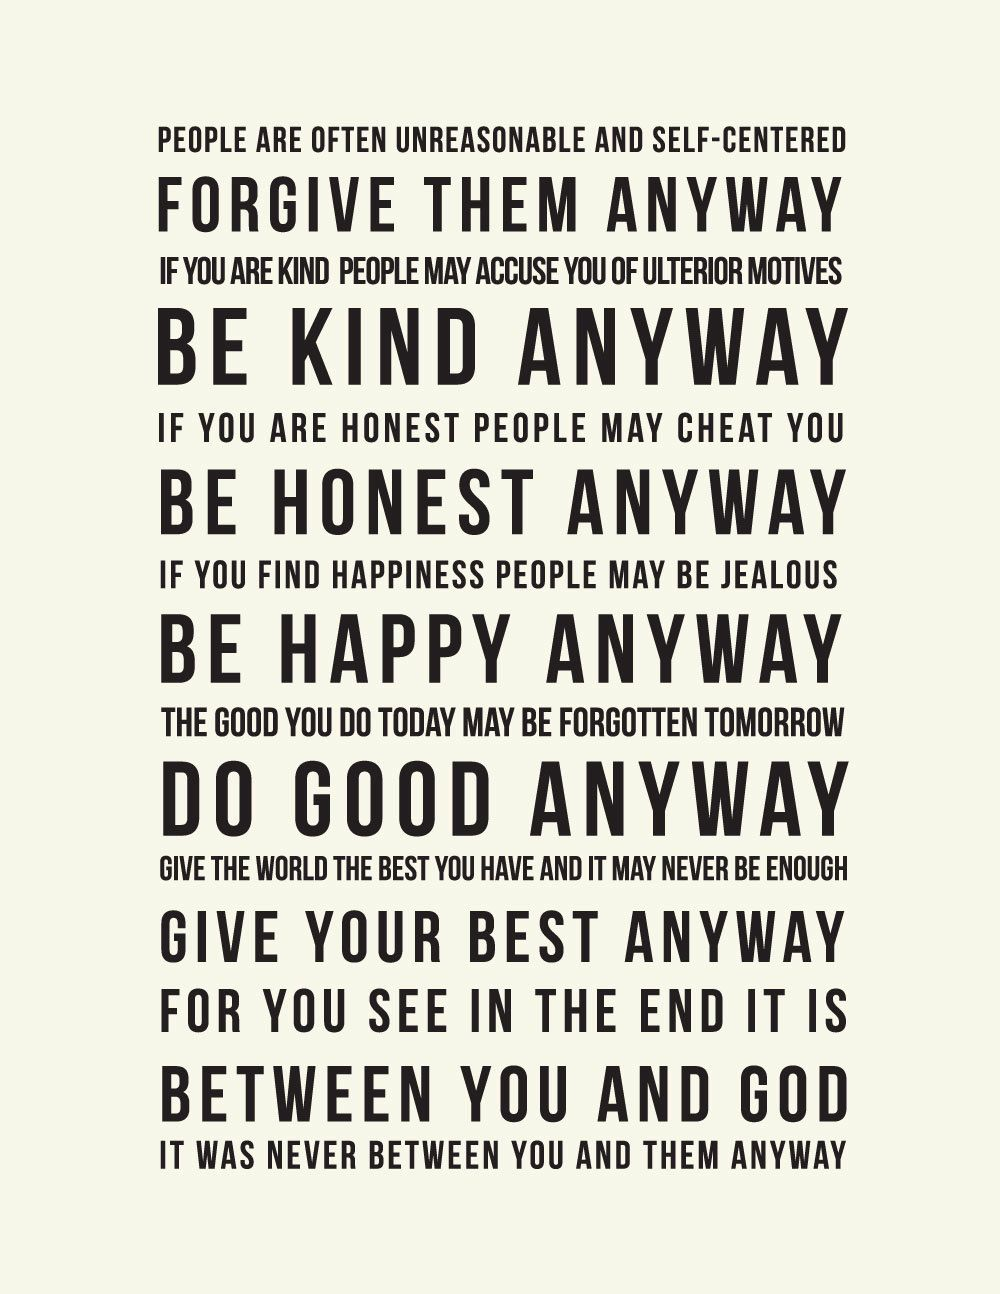 ... Been Thinking About Making A Canvas Or Something For My Office So I Can  See It Every Day, | Inspirational Mother Teresa Quote : Do It Anyway.